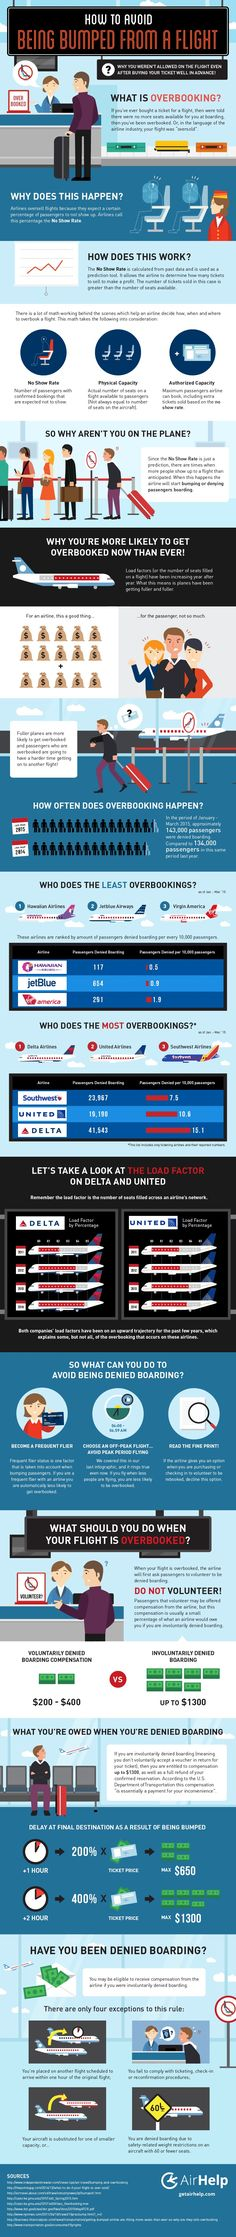 With all the airline craziness going on good to know your rights! - Imgur